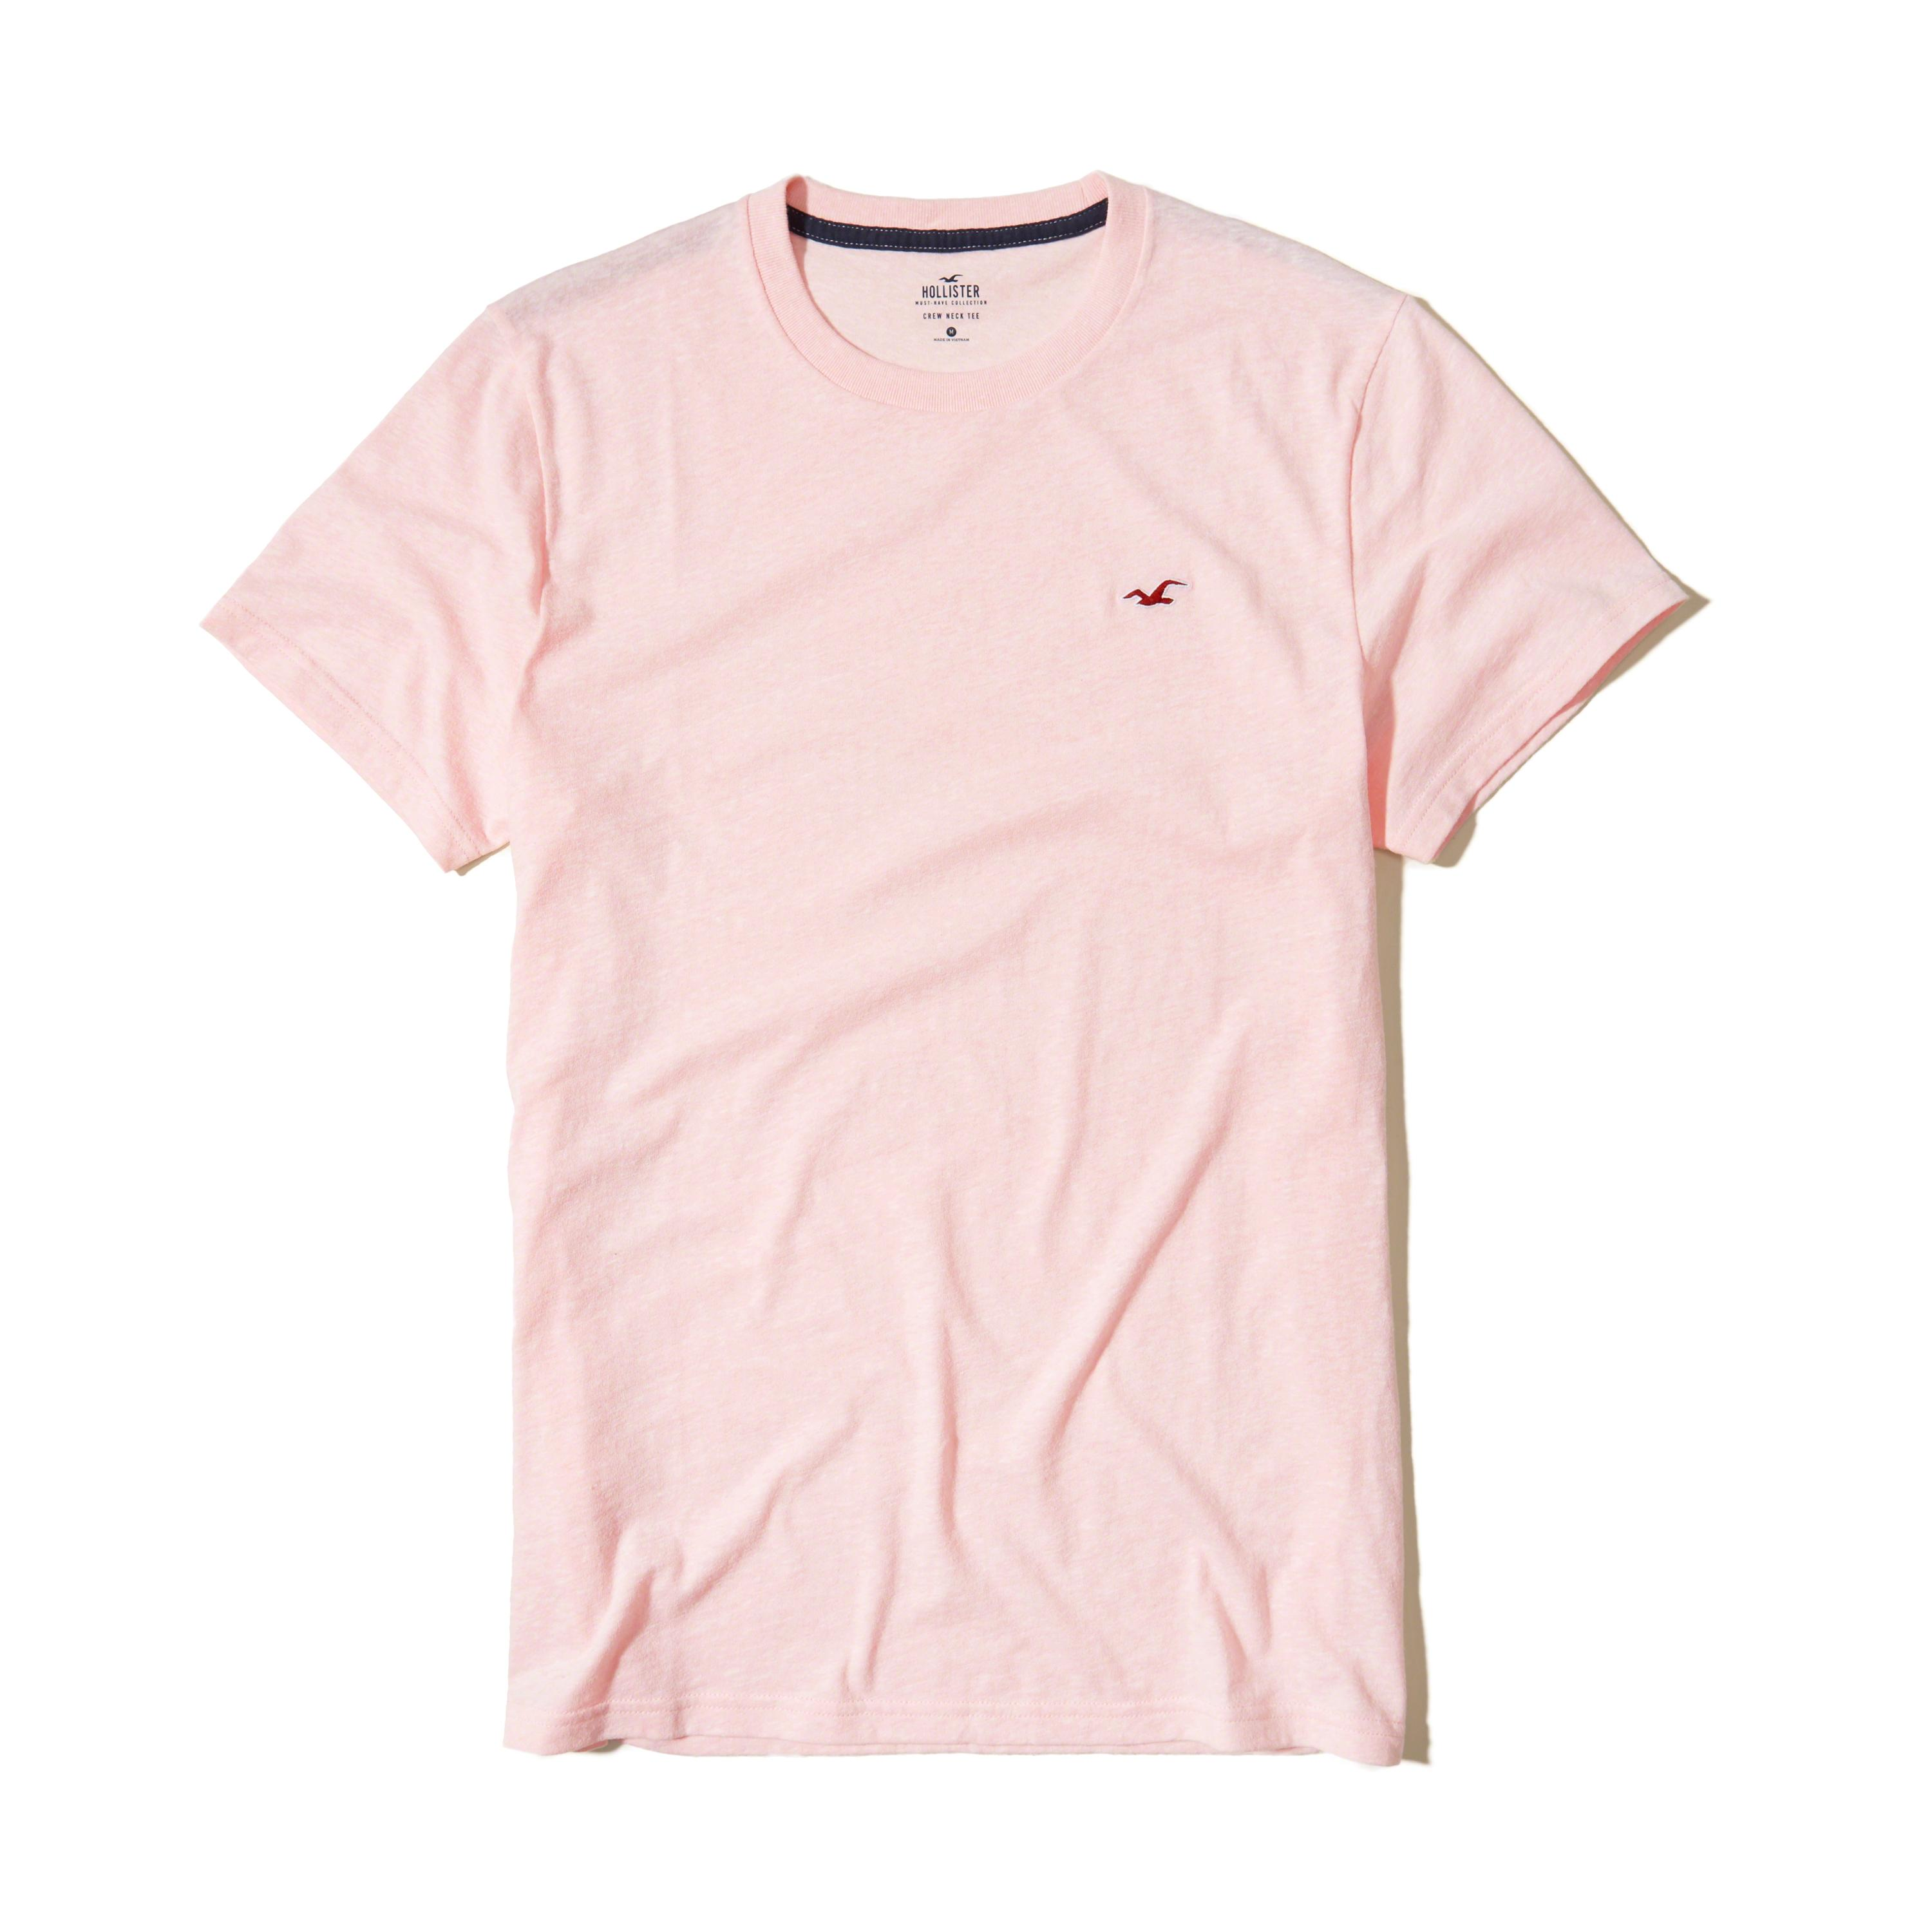 Lyst hollister must have crew t shirt in pink for men for Must have dress shirts